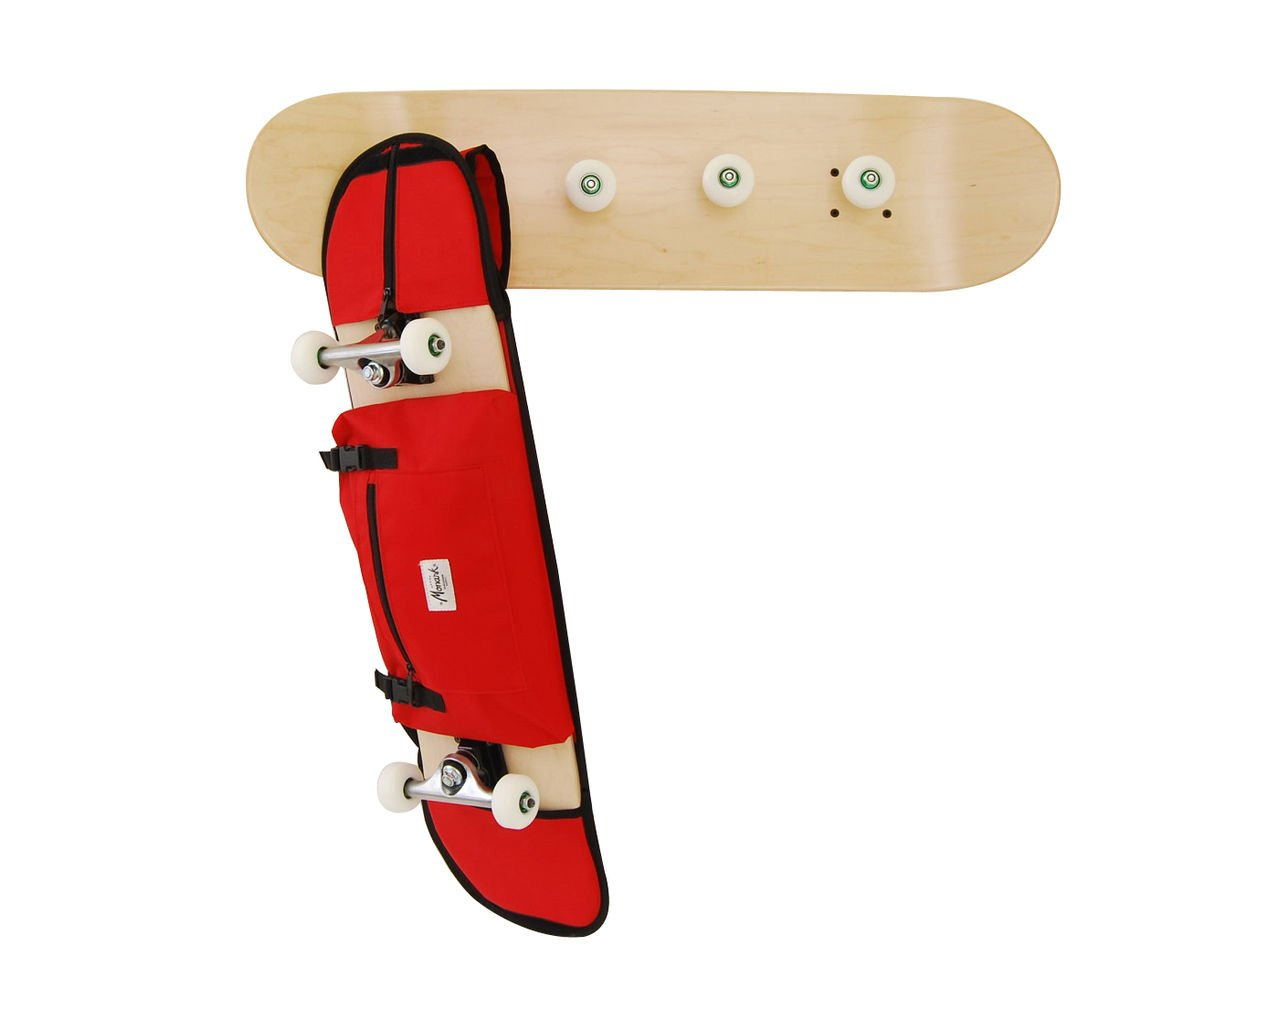 Skateboard-themed Coat rack by Skate-Home + red Monark Supply skateboard carry bag.Includes Screws and Anchors. Varnished in natural wood color. by SKATE HOME